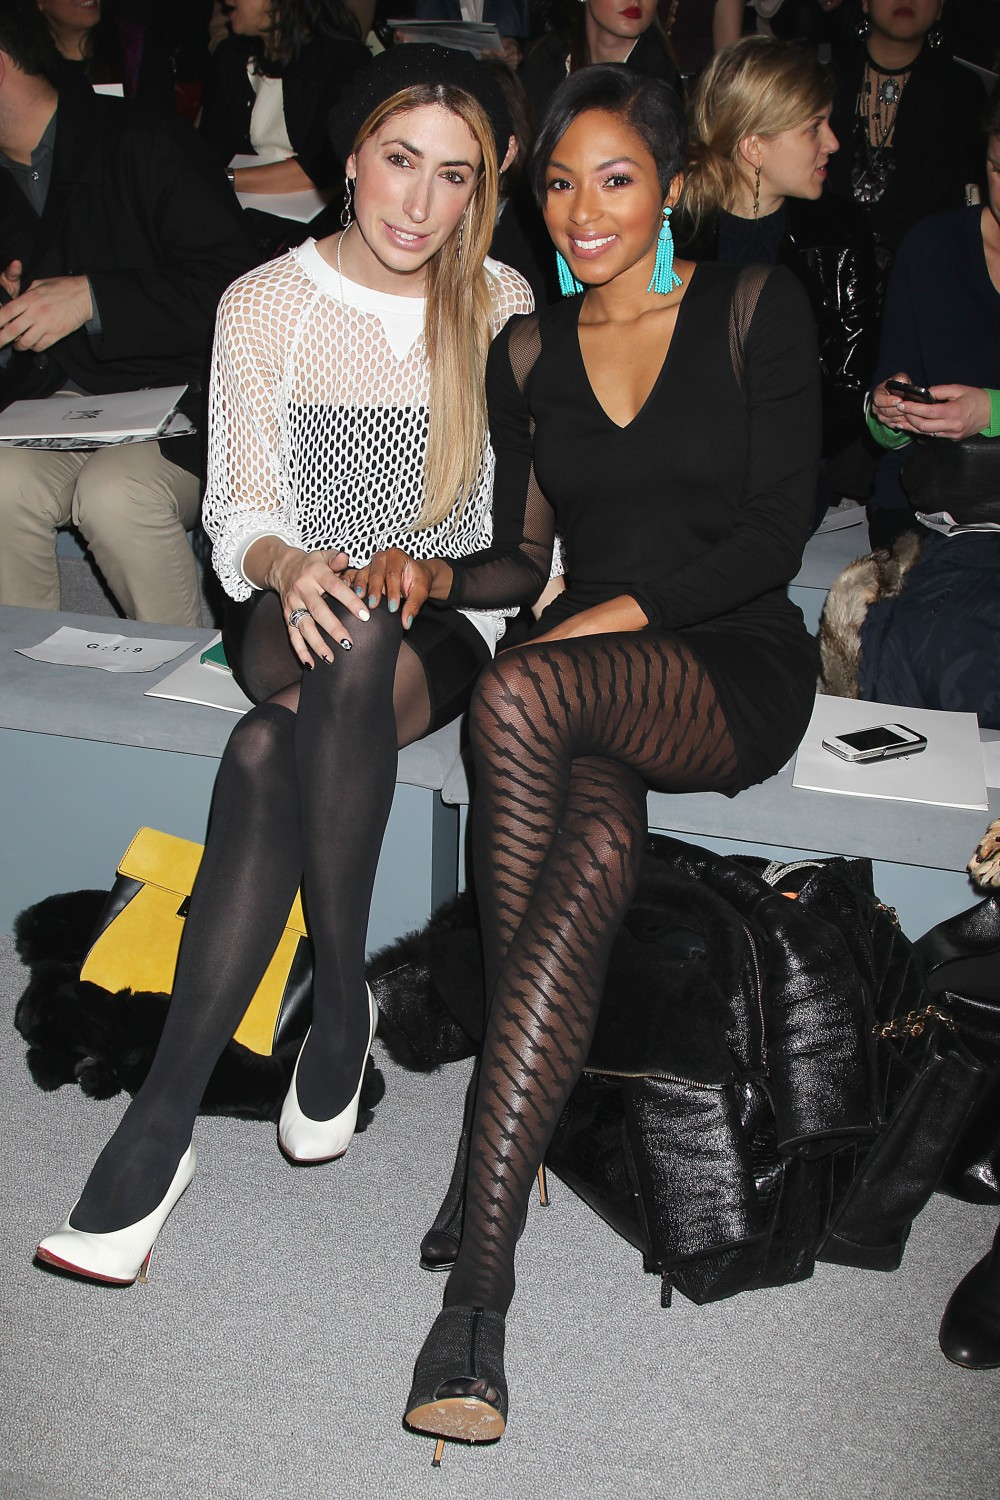 Lauren RaeLevy and Alicia Quaries Front Row at The Milly NYFW 2013 Show